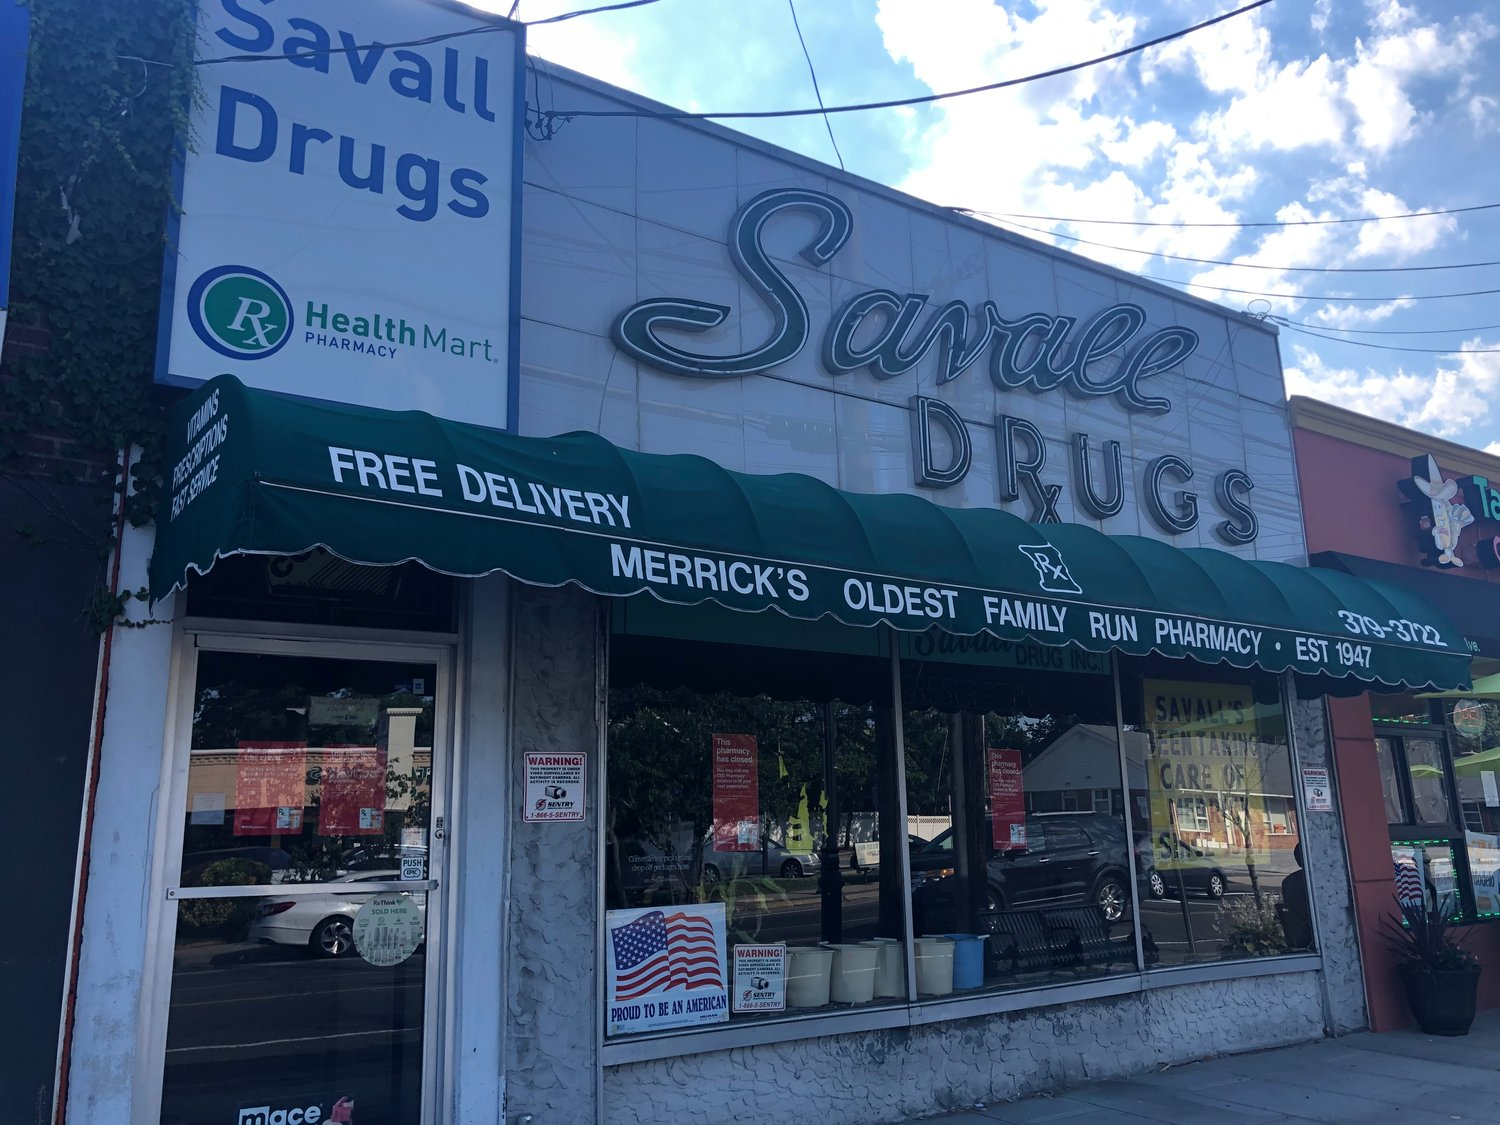 Savall Drugs served as a fixture in the Merrick community since 1947. Its inventory was sold to CVS Pharmacy last month.